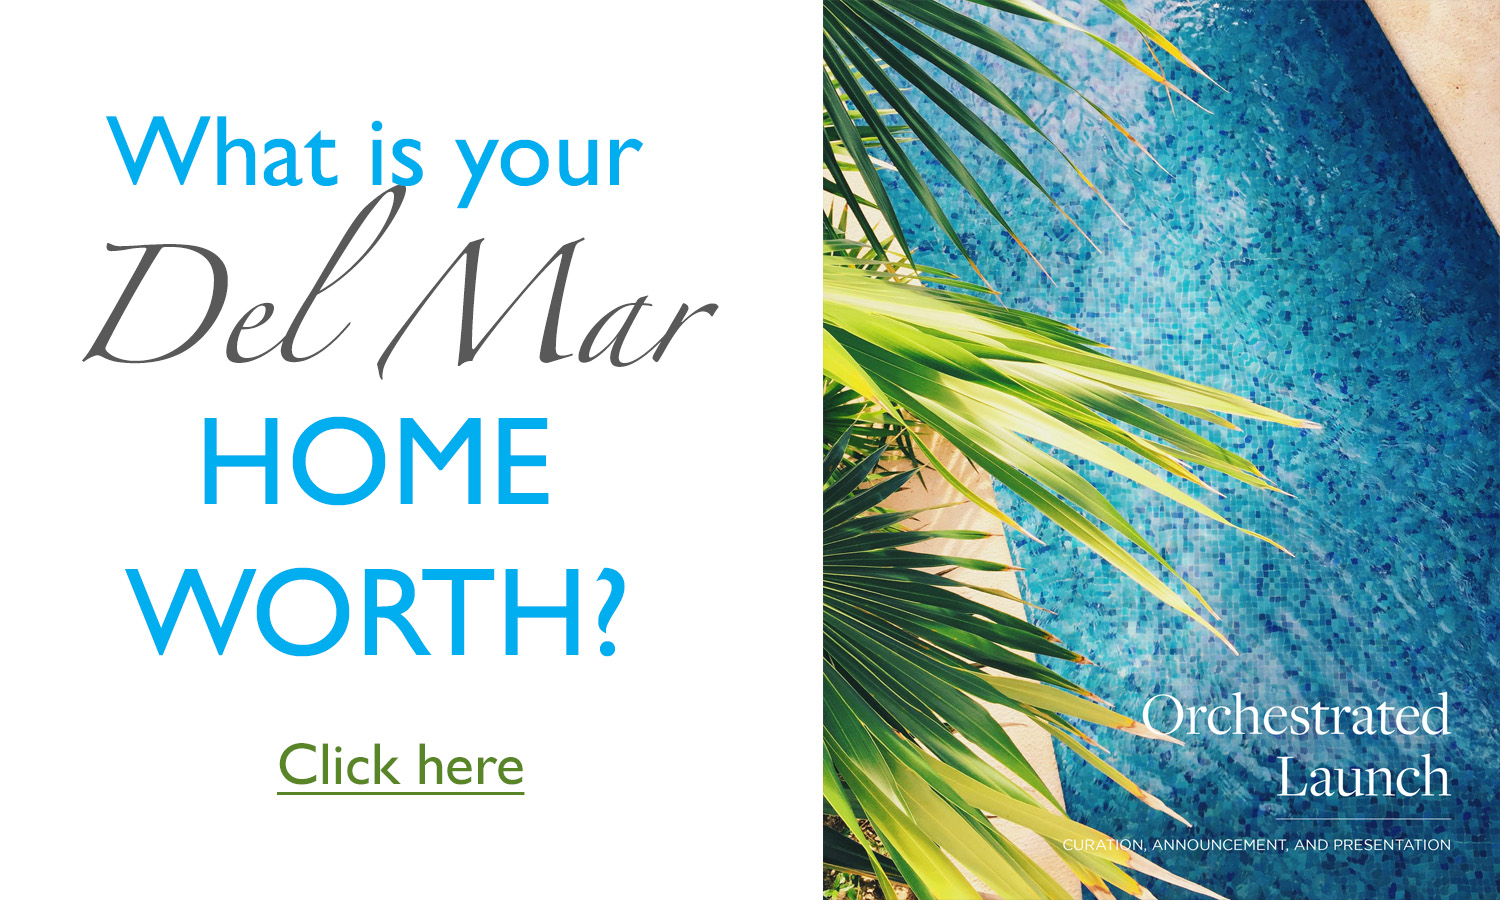 What is the value of your property in Del Mar 92014